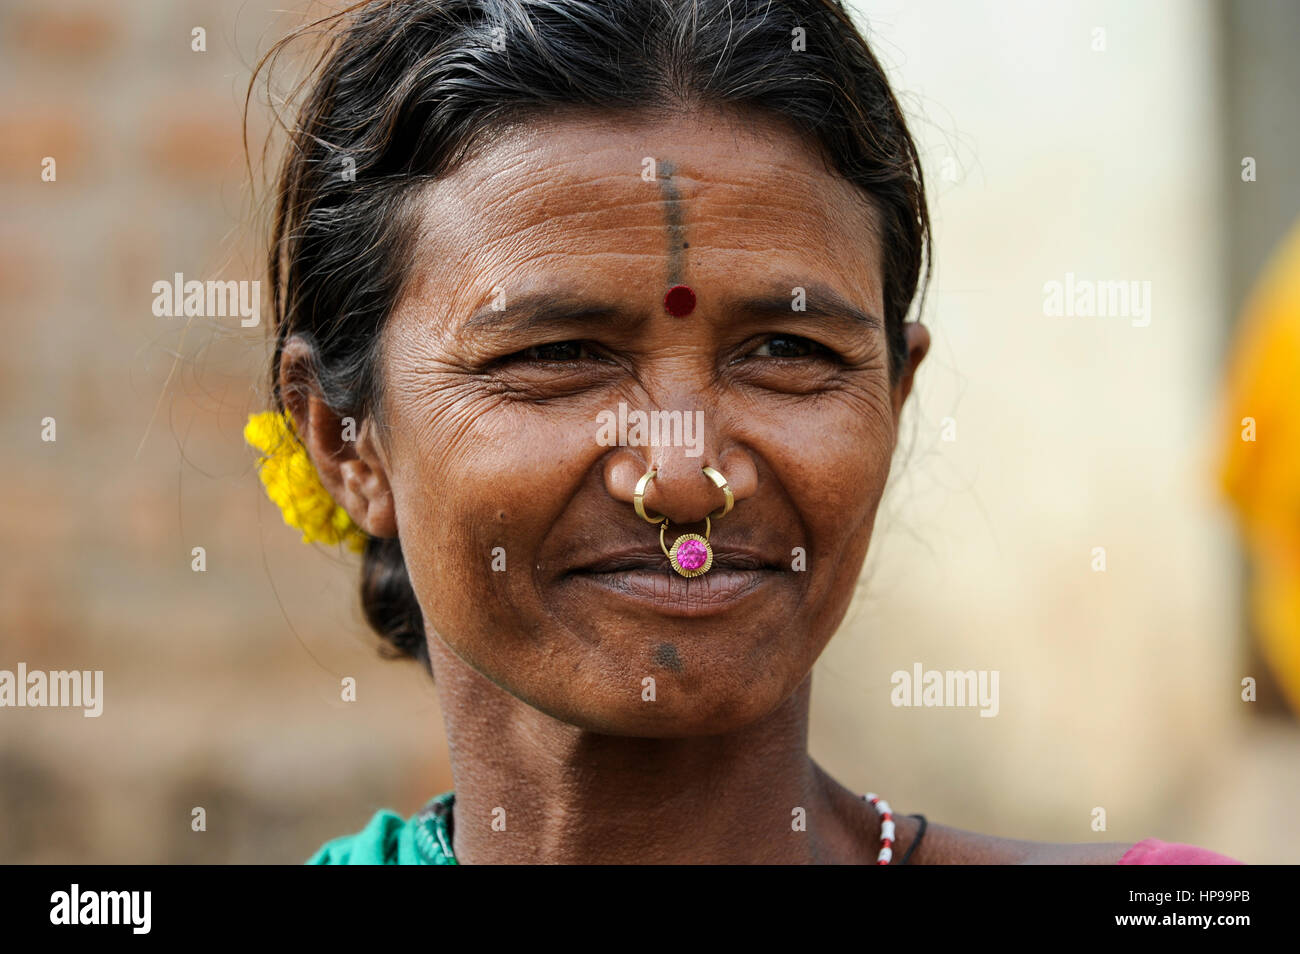 Gold Nose Ring High Resolution Stock Photography And Images Alamy